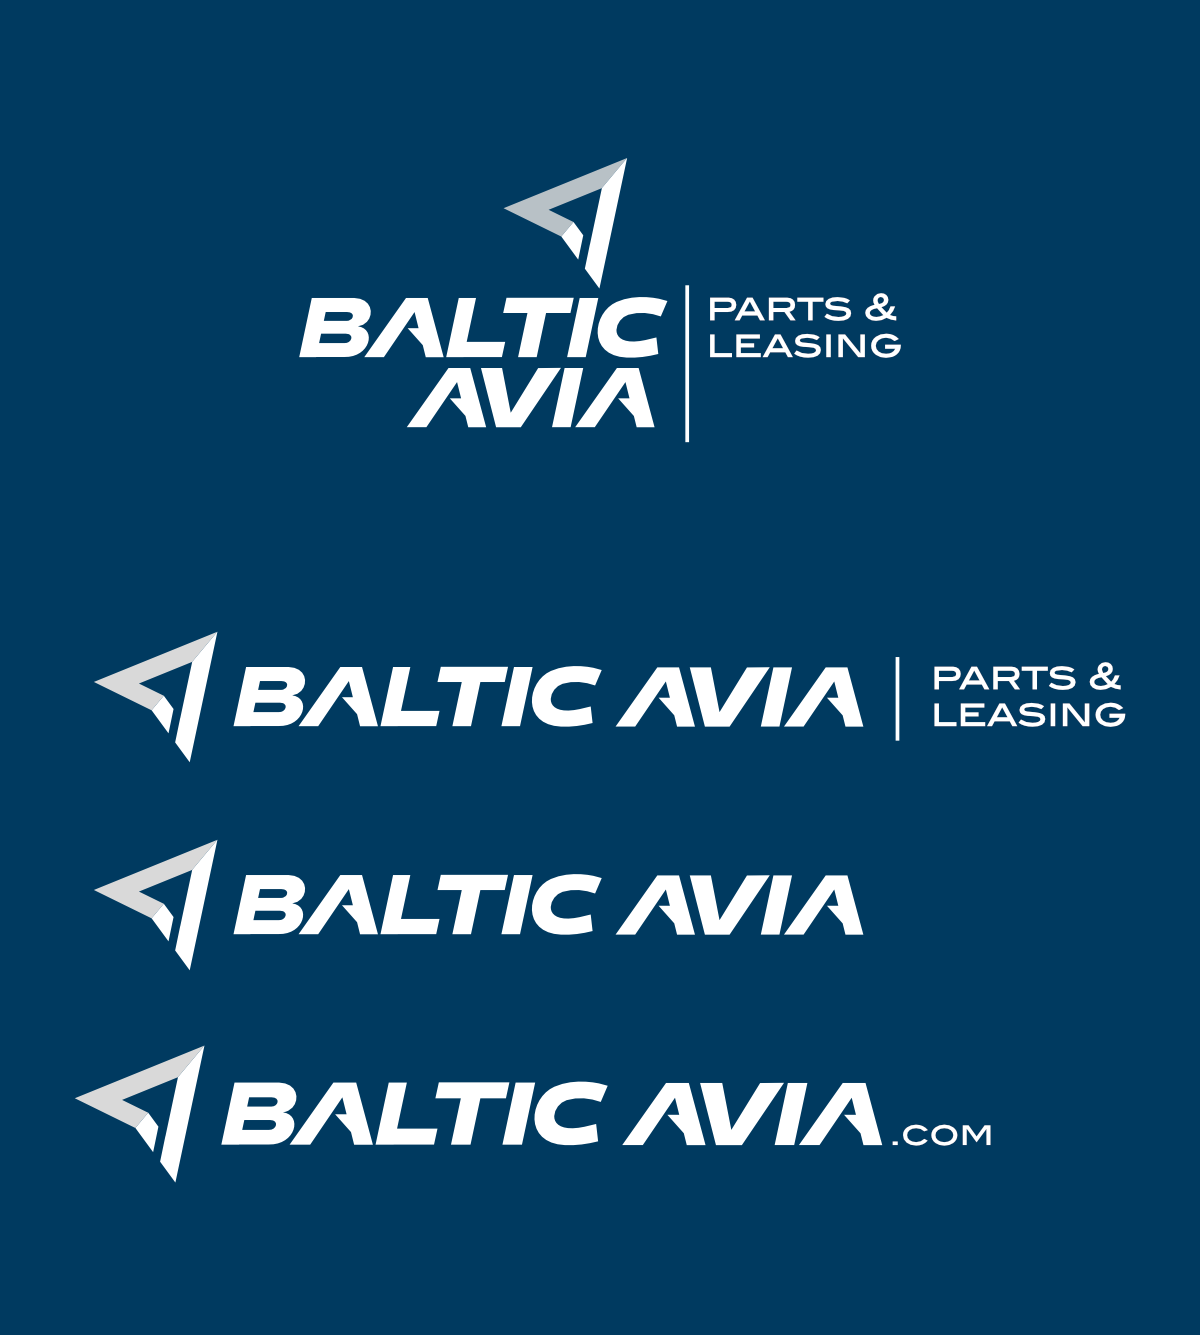 baltic avia branding big